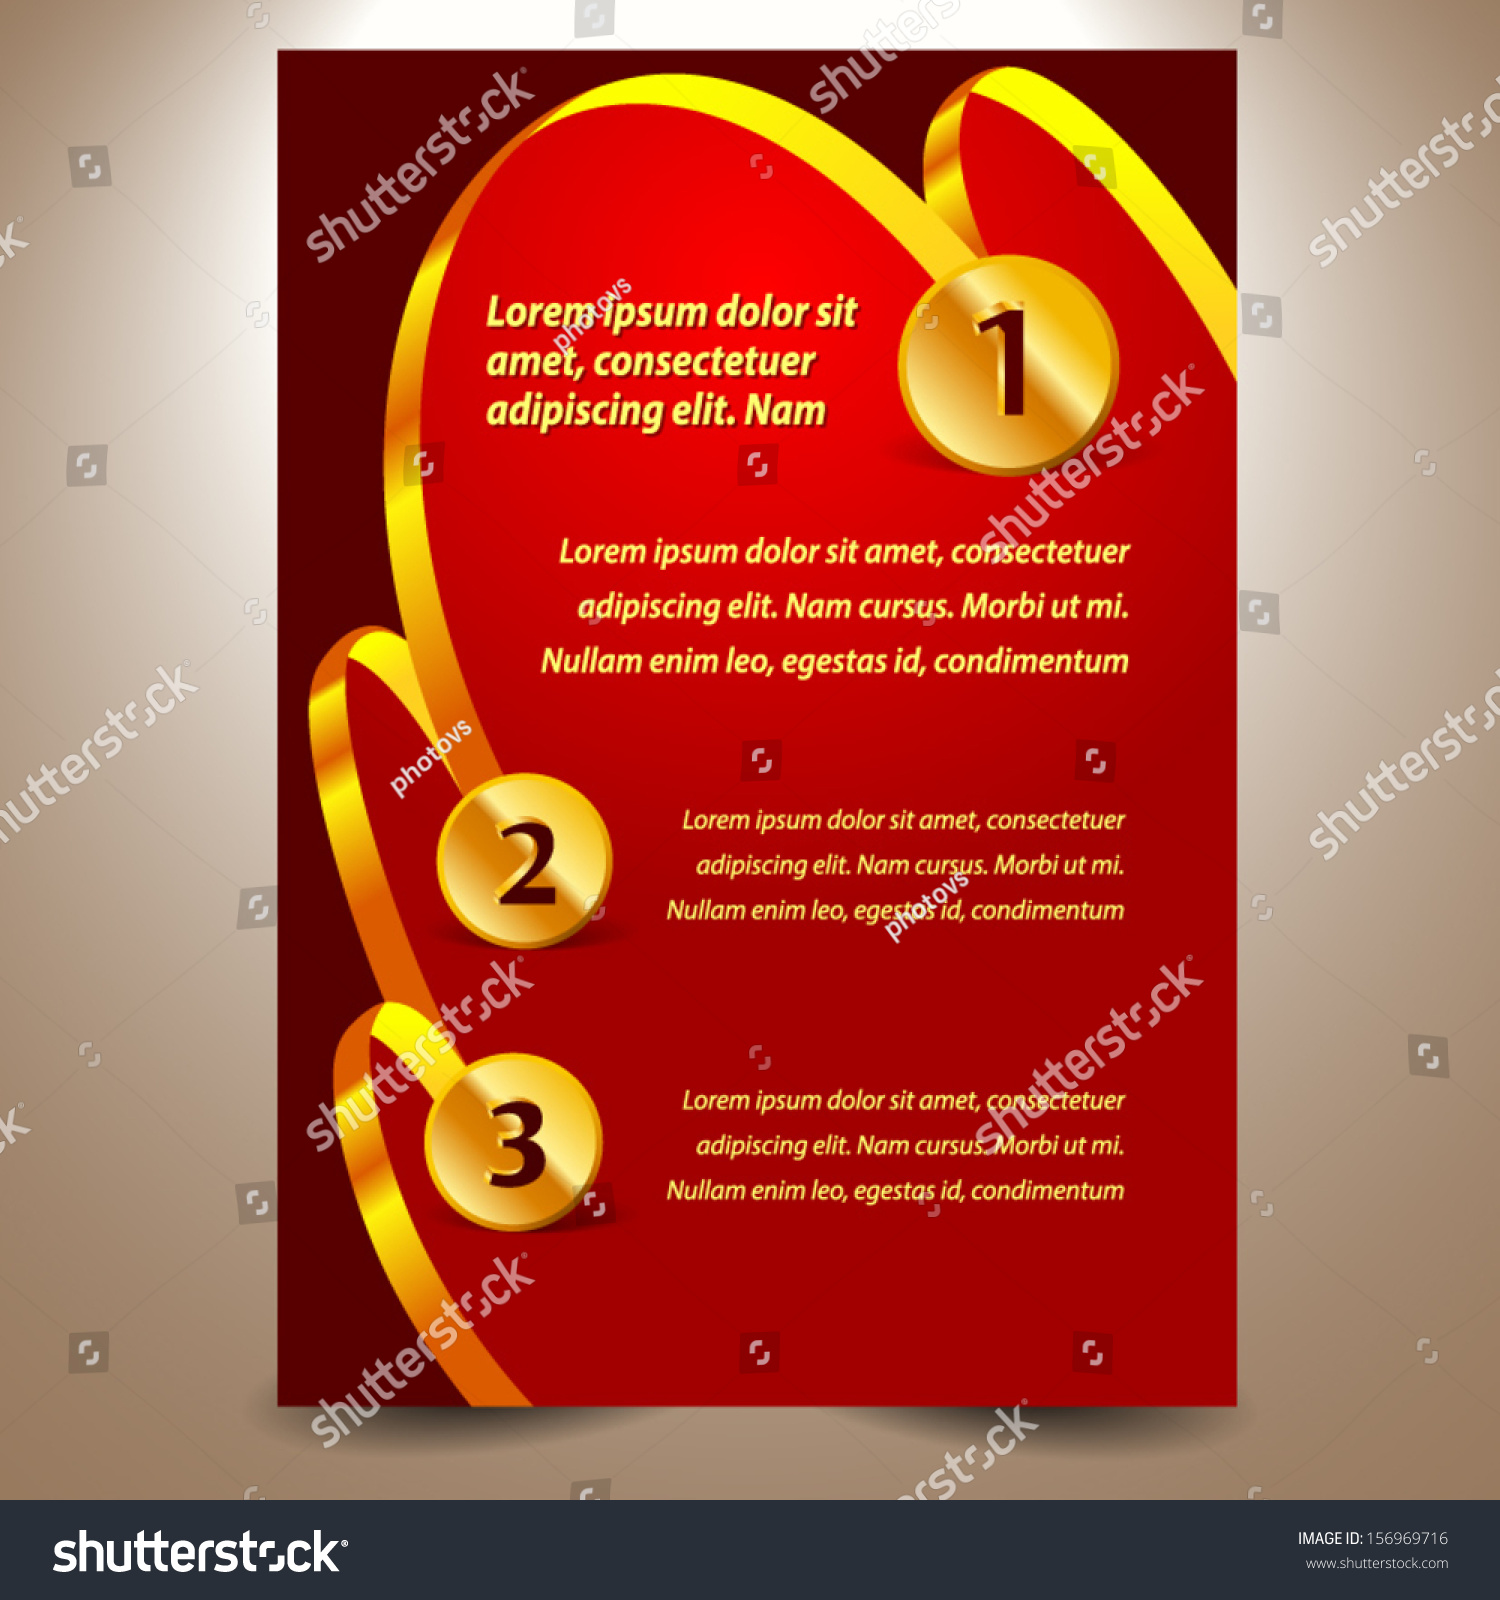 Blank Design Template Certificate Ribbon Award Stock Vector 156969716 Shutterstock